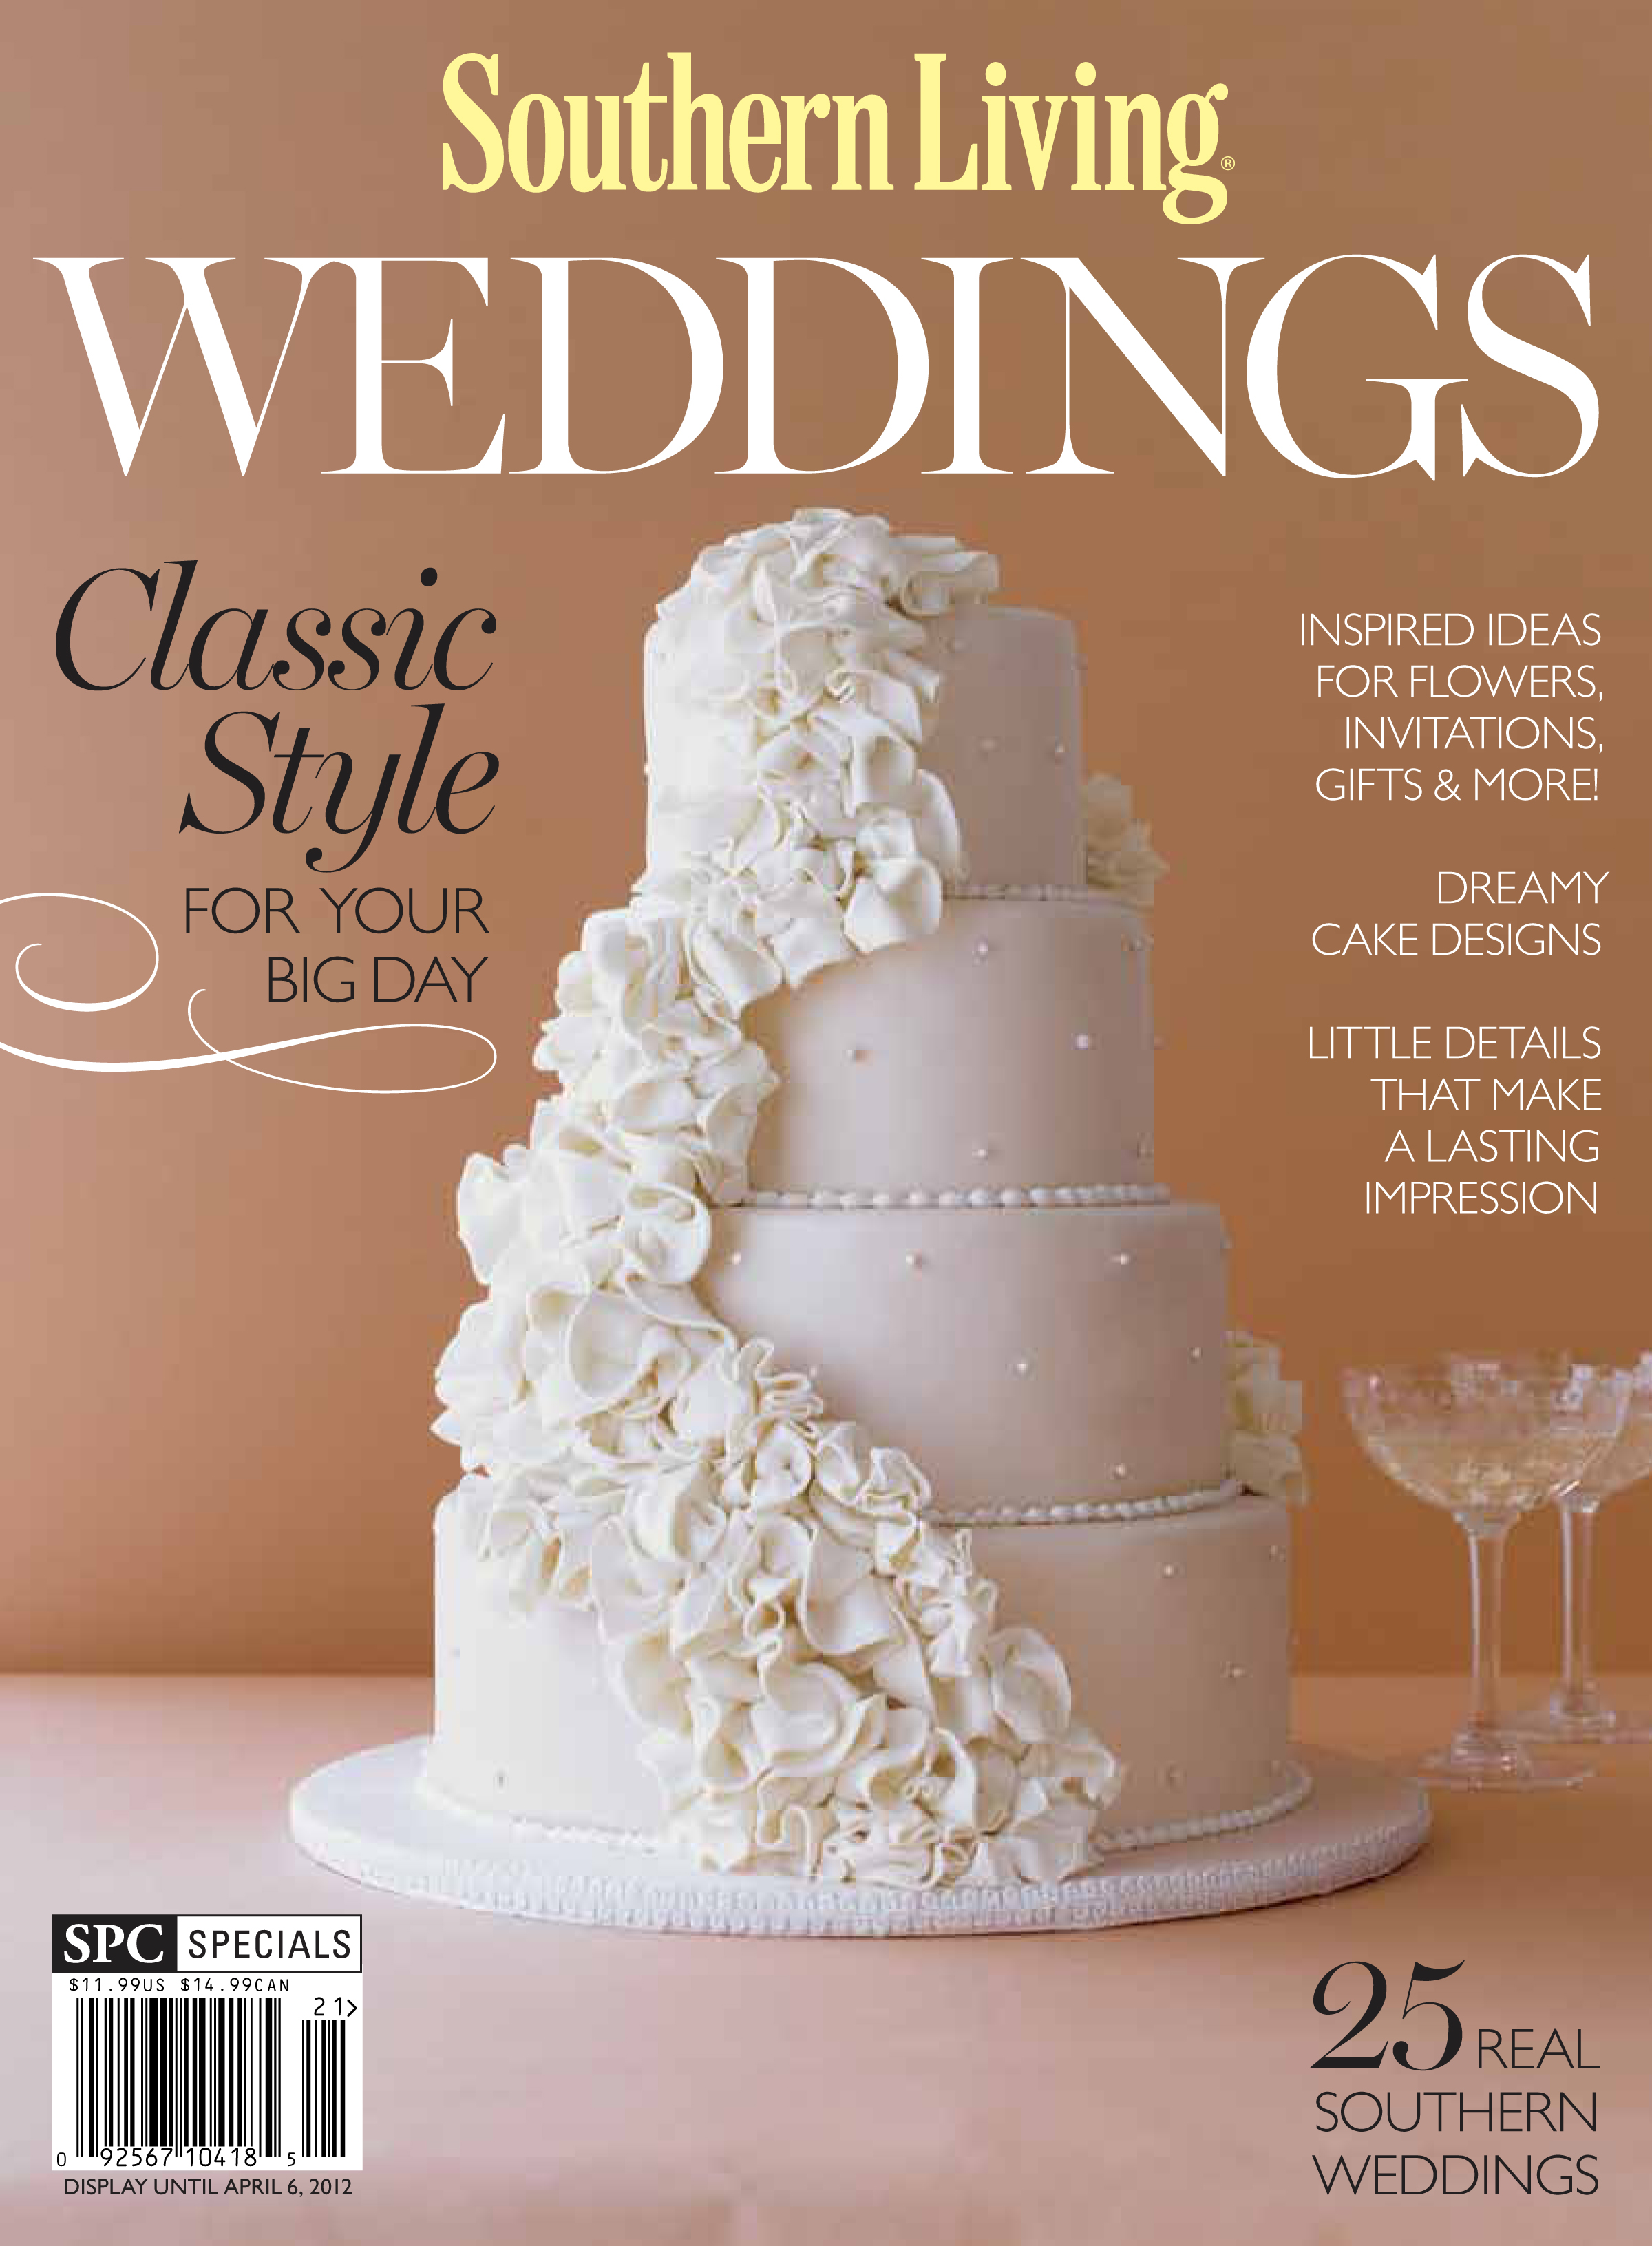 southern living 39 s annual wedding issue focuses on southern